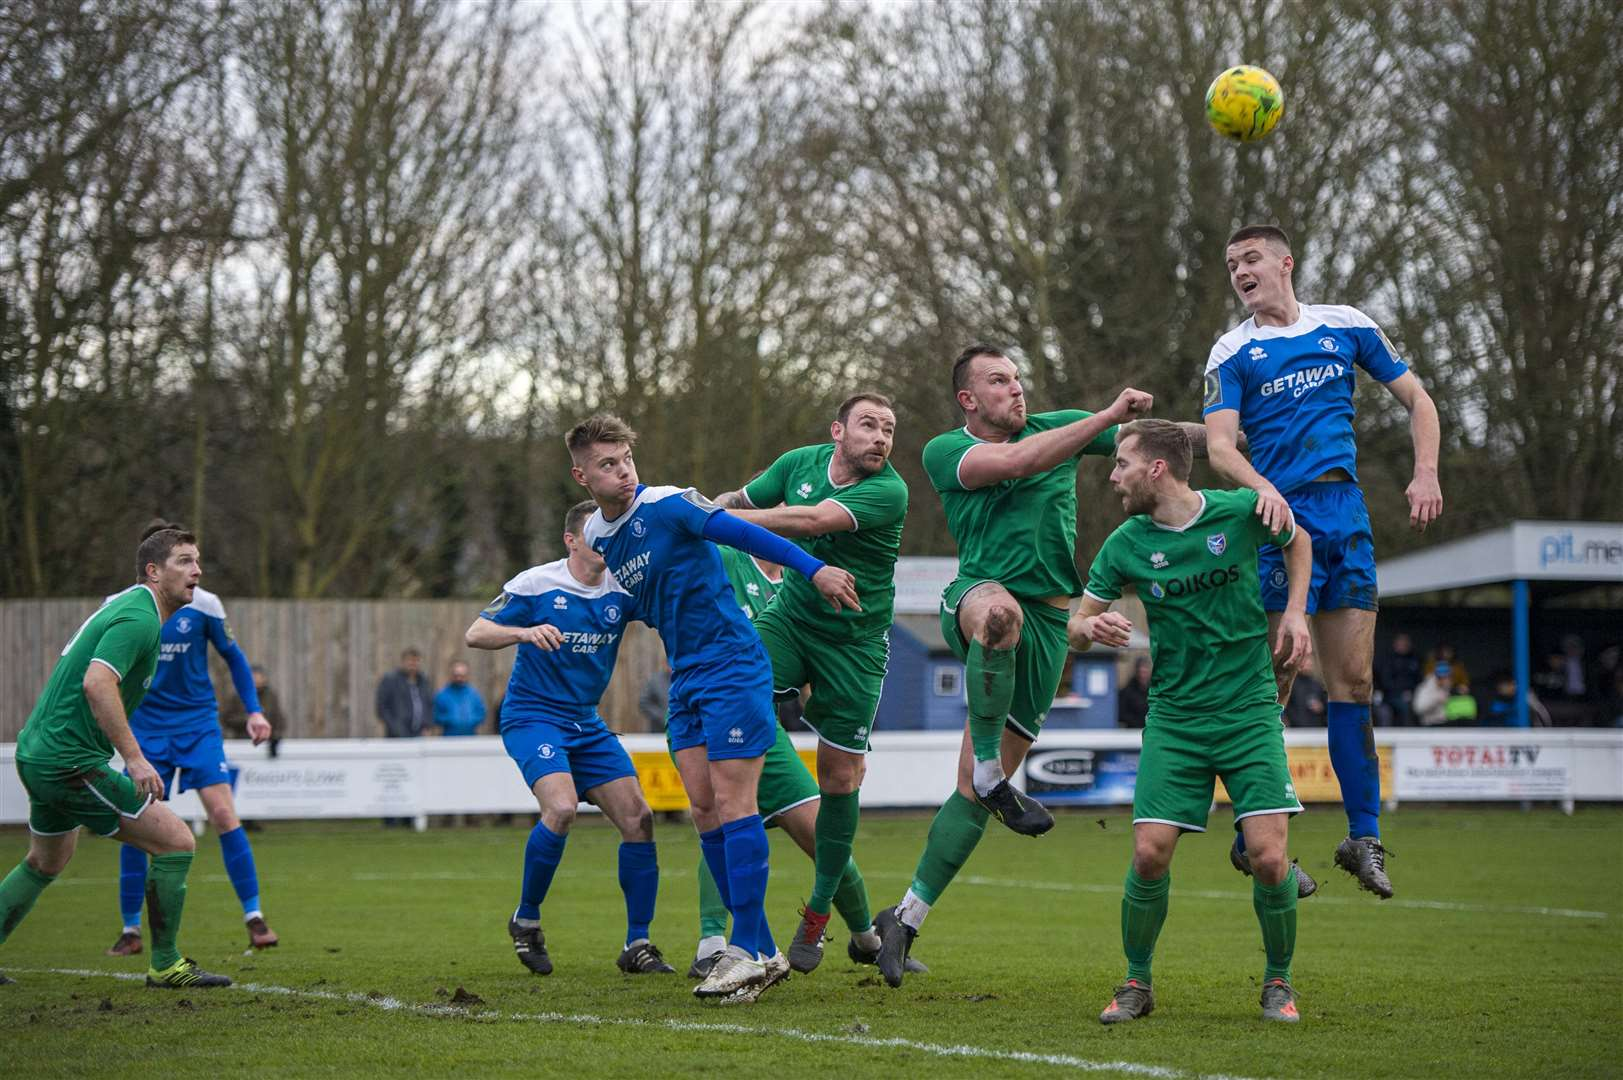 Football - Bury Town v Canvey Island - Canvey Island Clear Another Corner - Location - Ram Meadow - Picture - Neil Dady. (25916184)